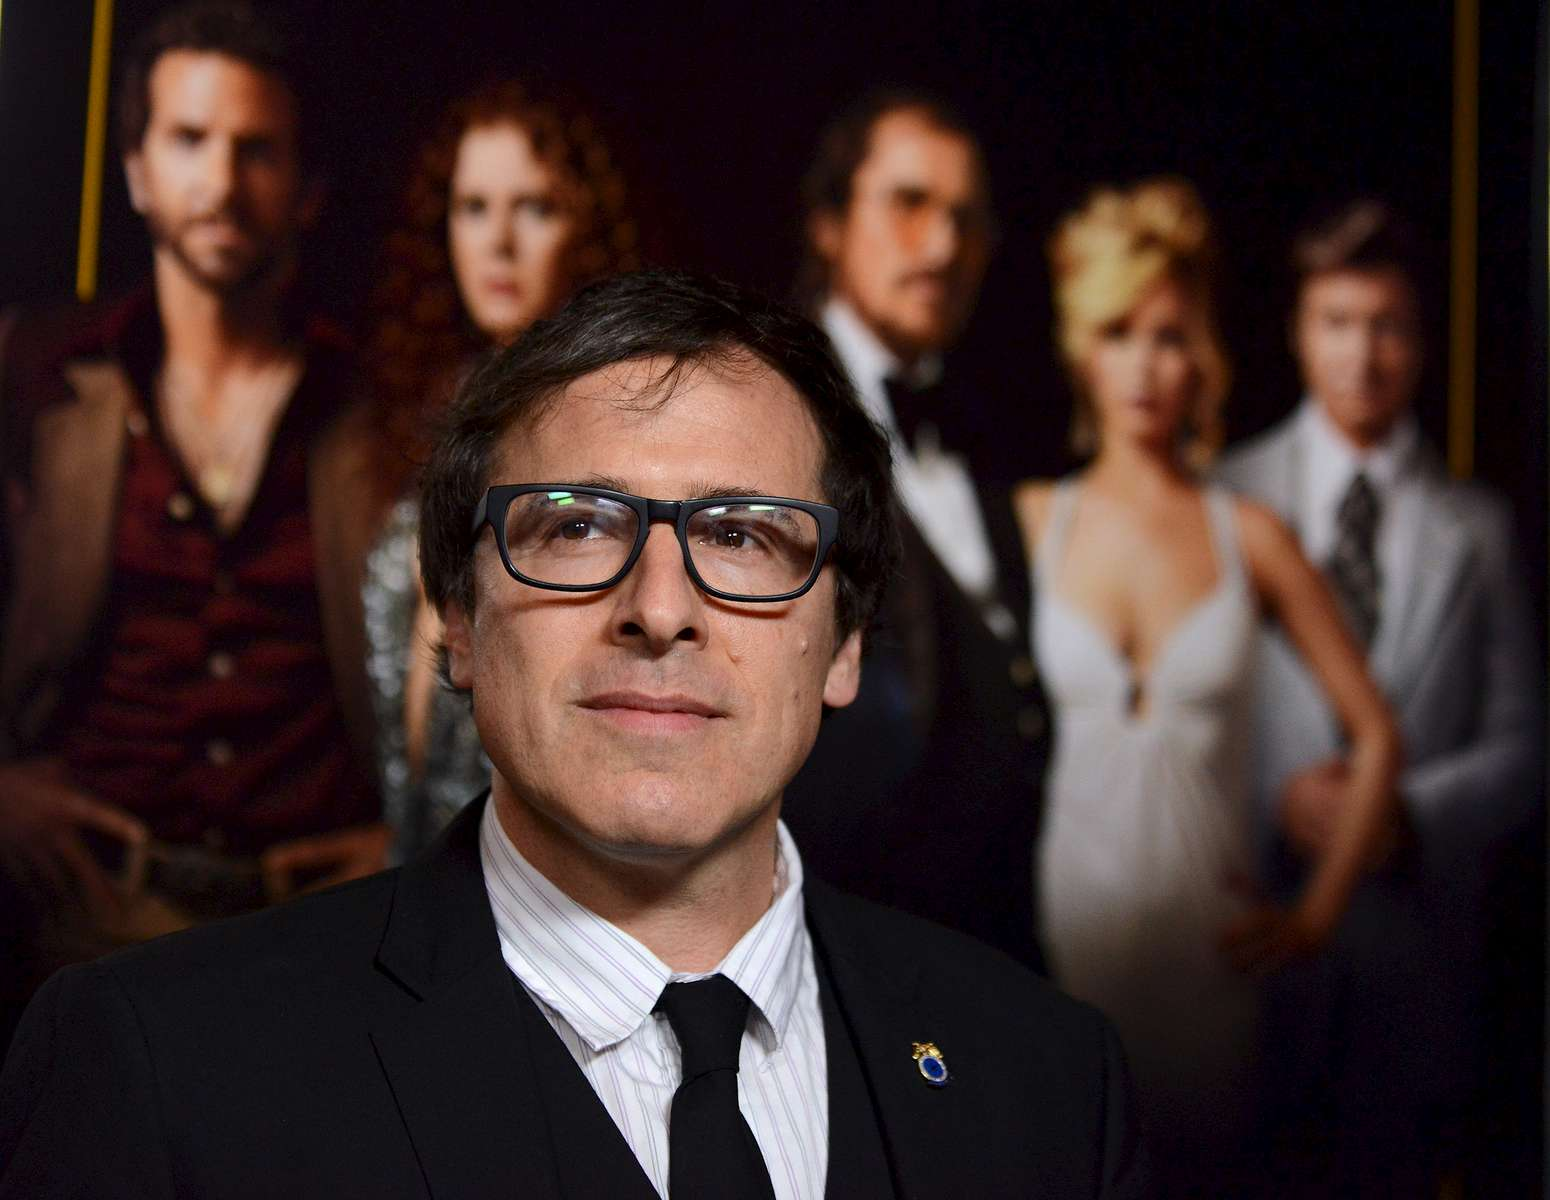 David O. Russell arrives at the Los Angeles special screening of \{quote}American Hustle\{quote} at Directors Guild of America on Tuesday, Dec. 3, 2013 in Los Angeles. (Photo by Jordan Strauss/Invision/AP)